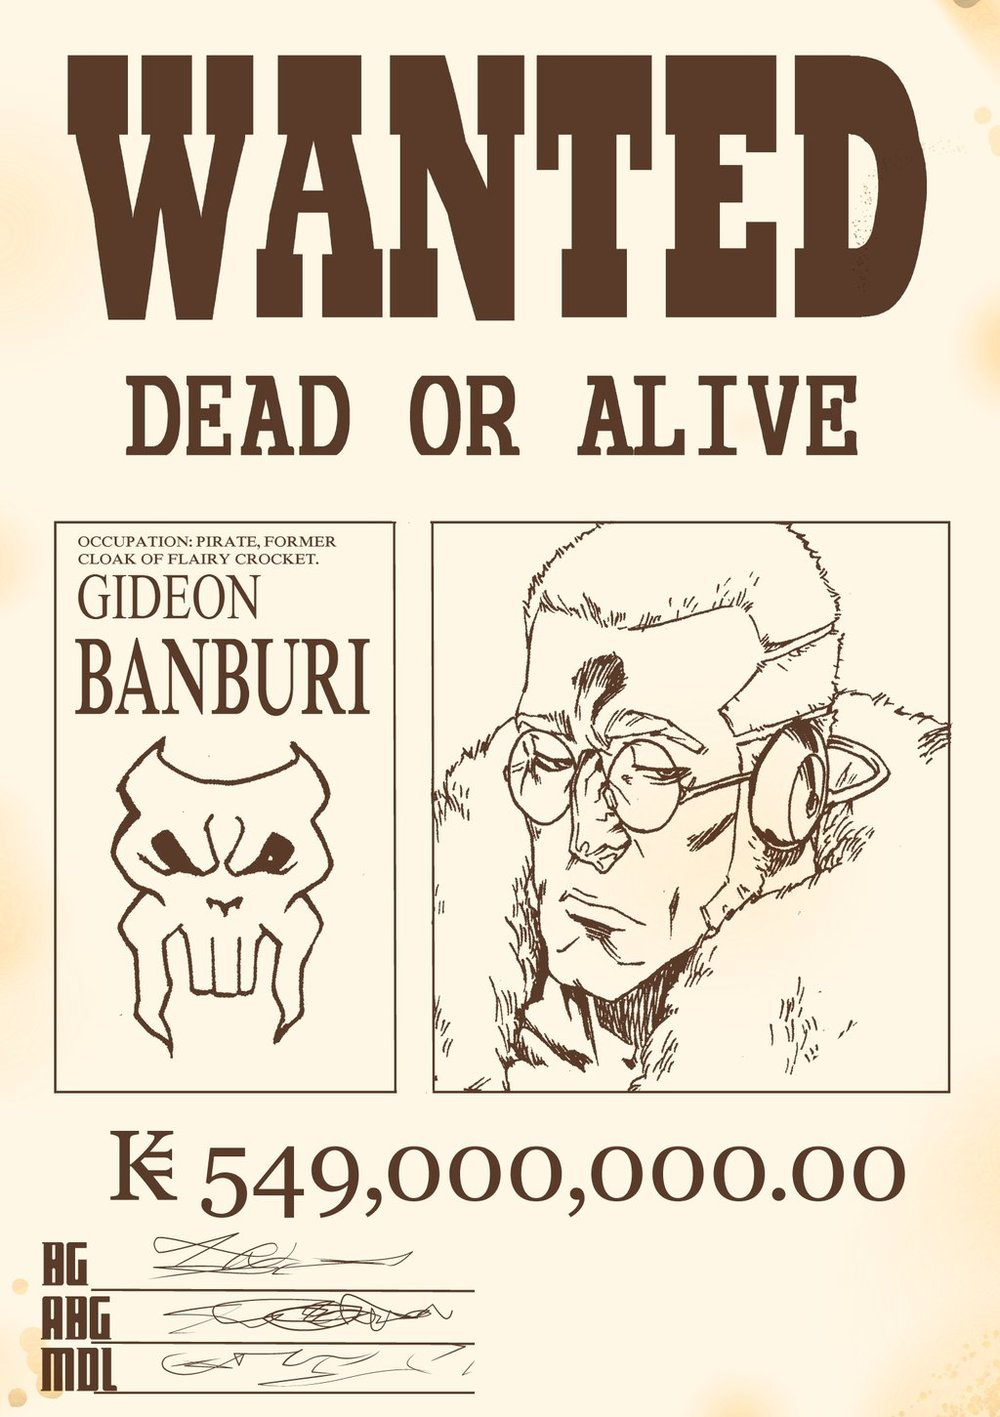 Gideon Banburi Wanted Poster